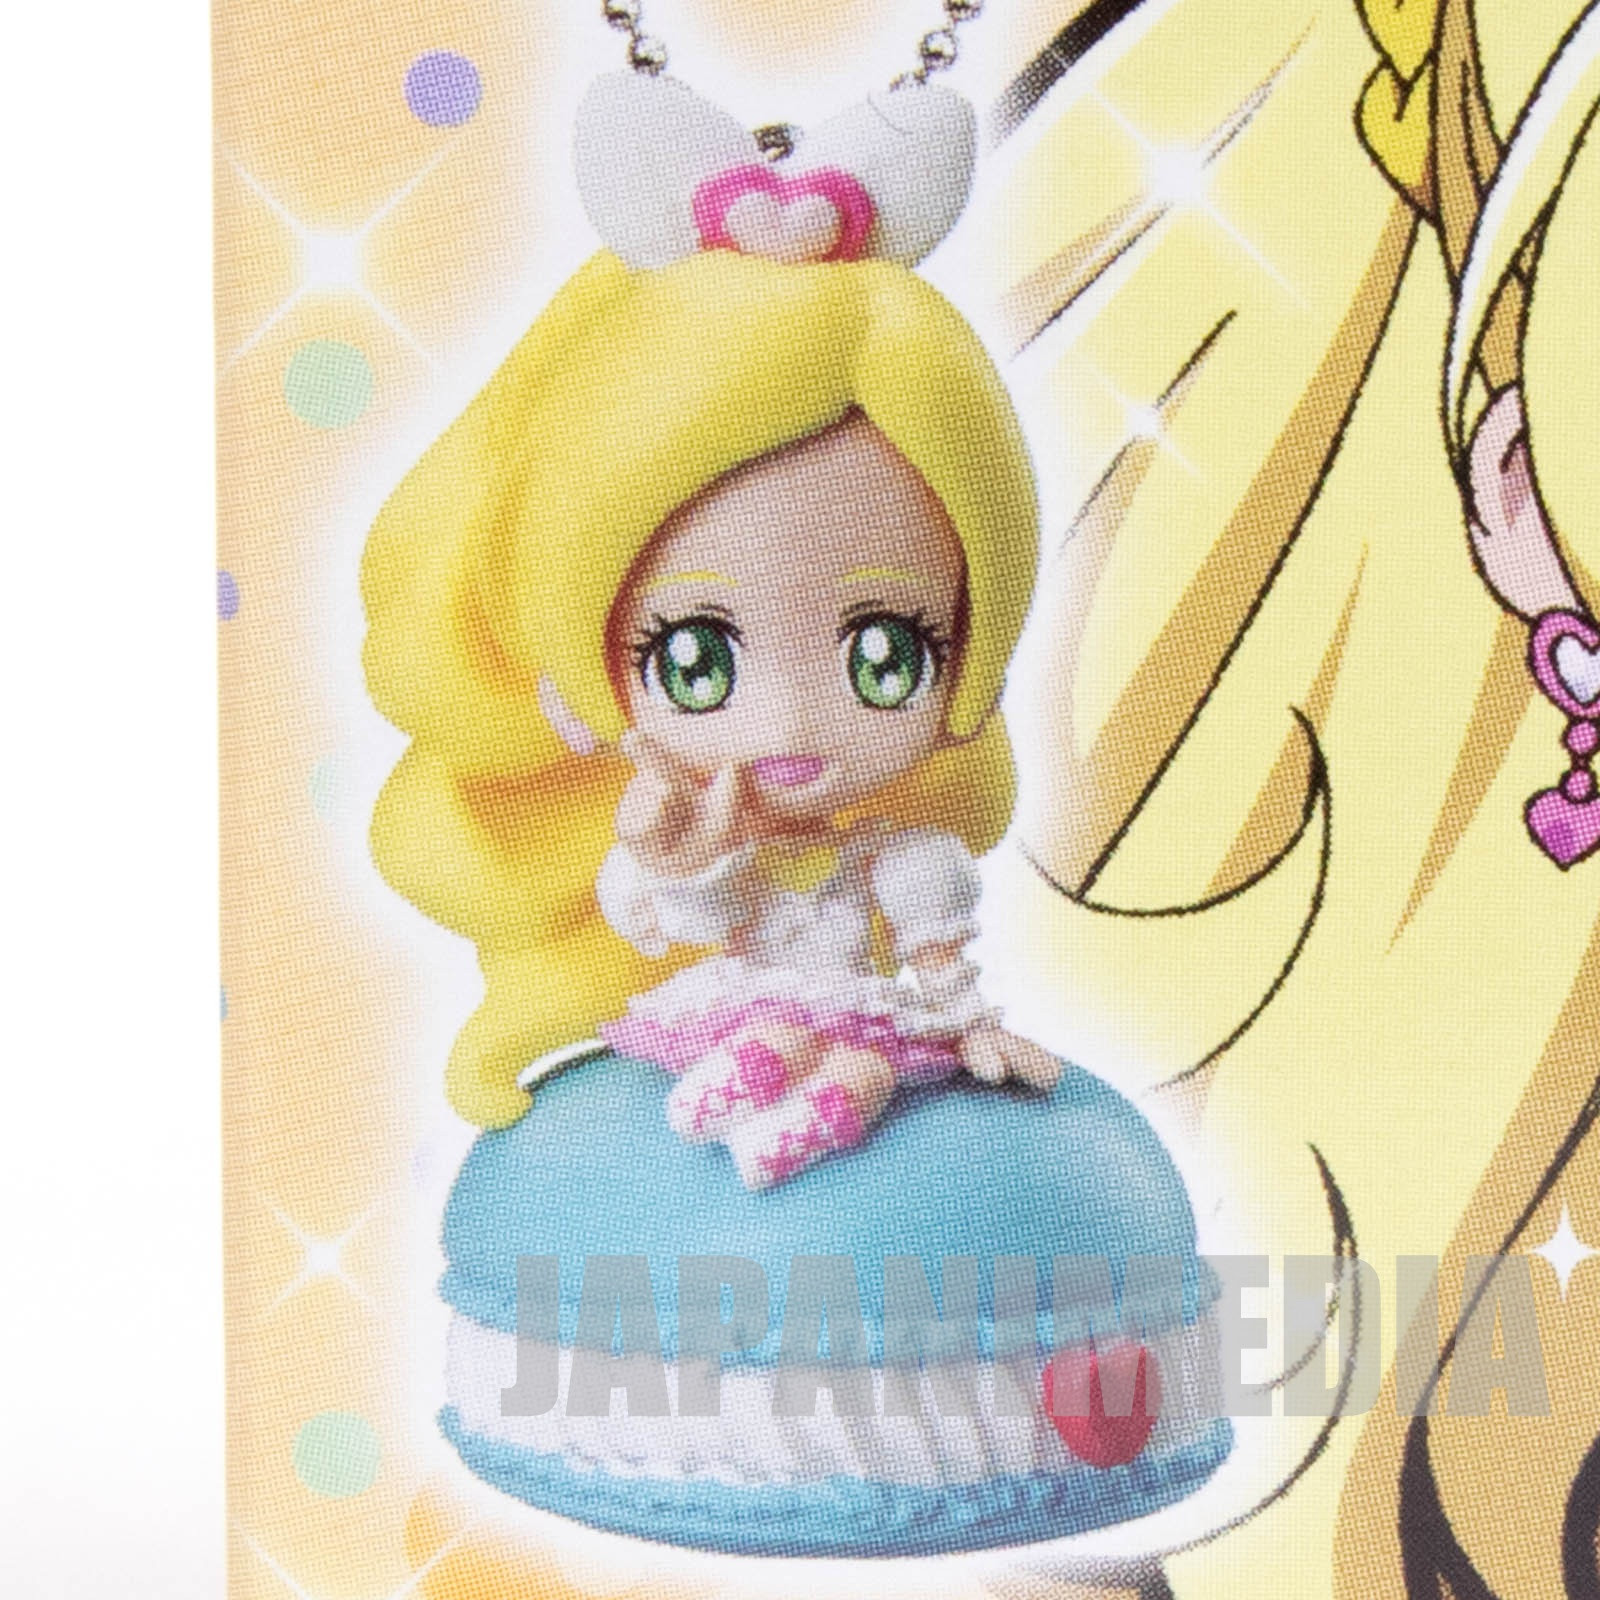 Suite PreCure Cure Rhythm PreCure Sweets mascot Figure Keychain JAPAN ANIME